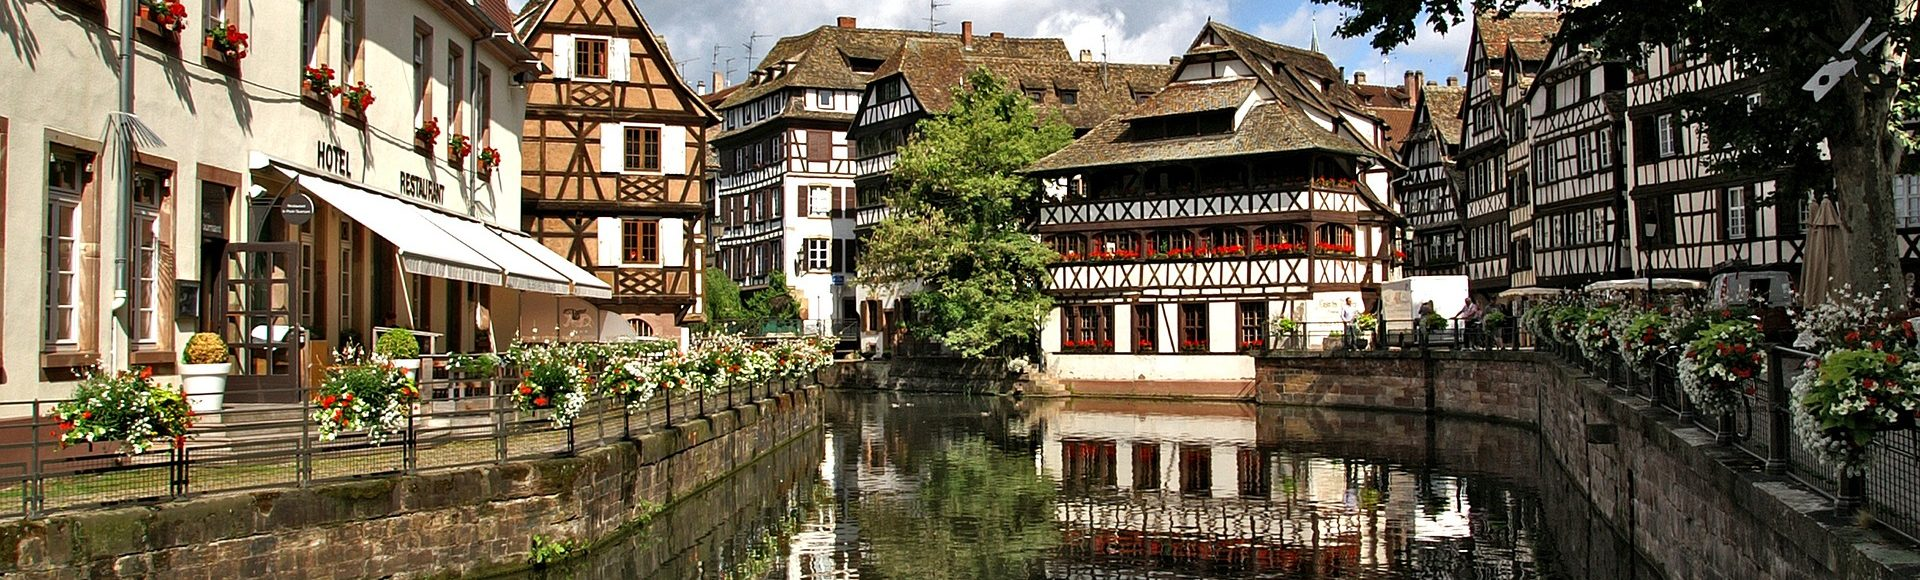 Go East to Alsace